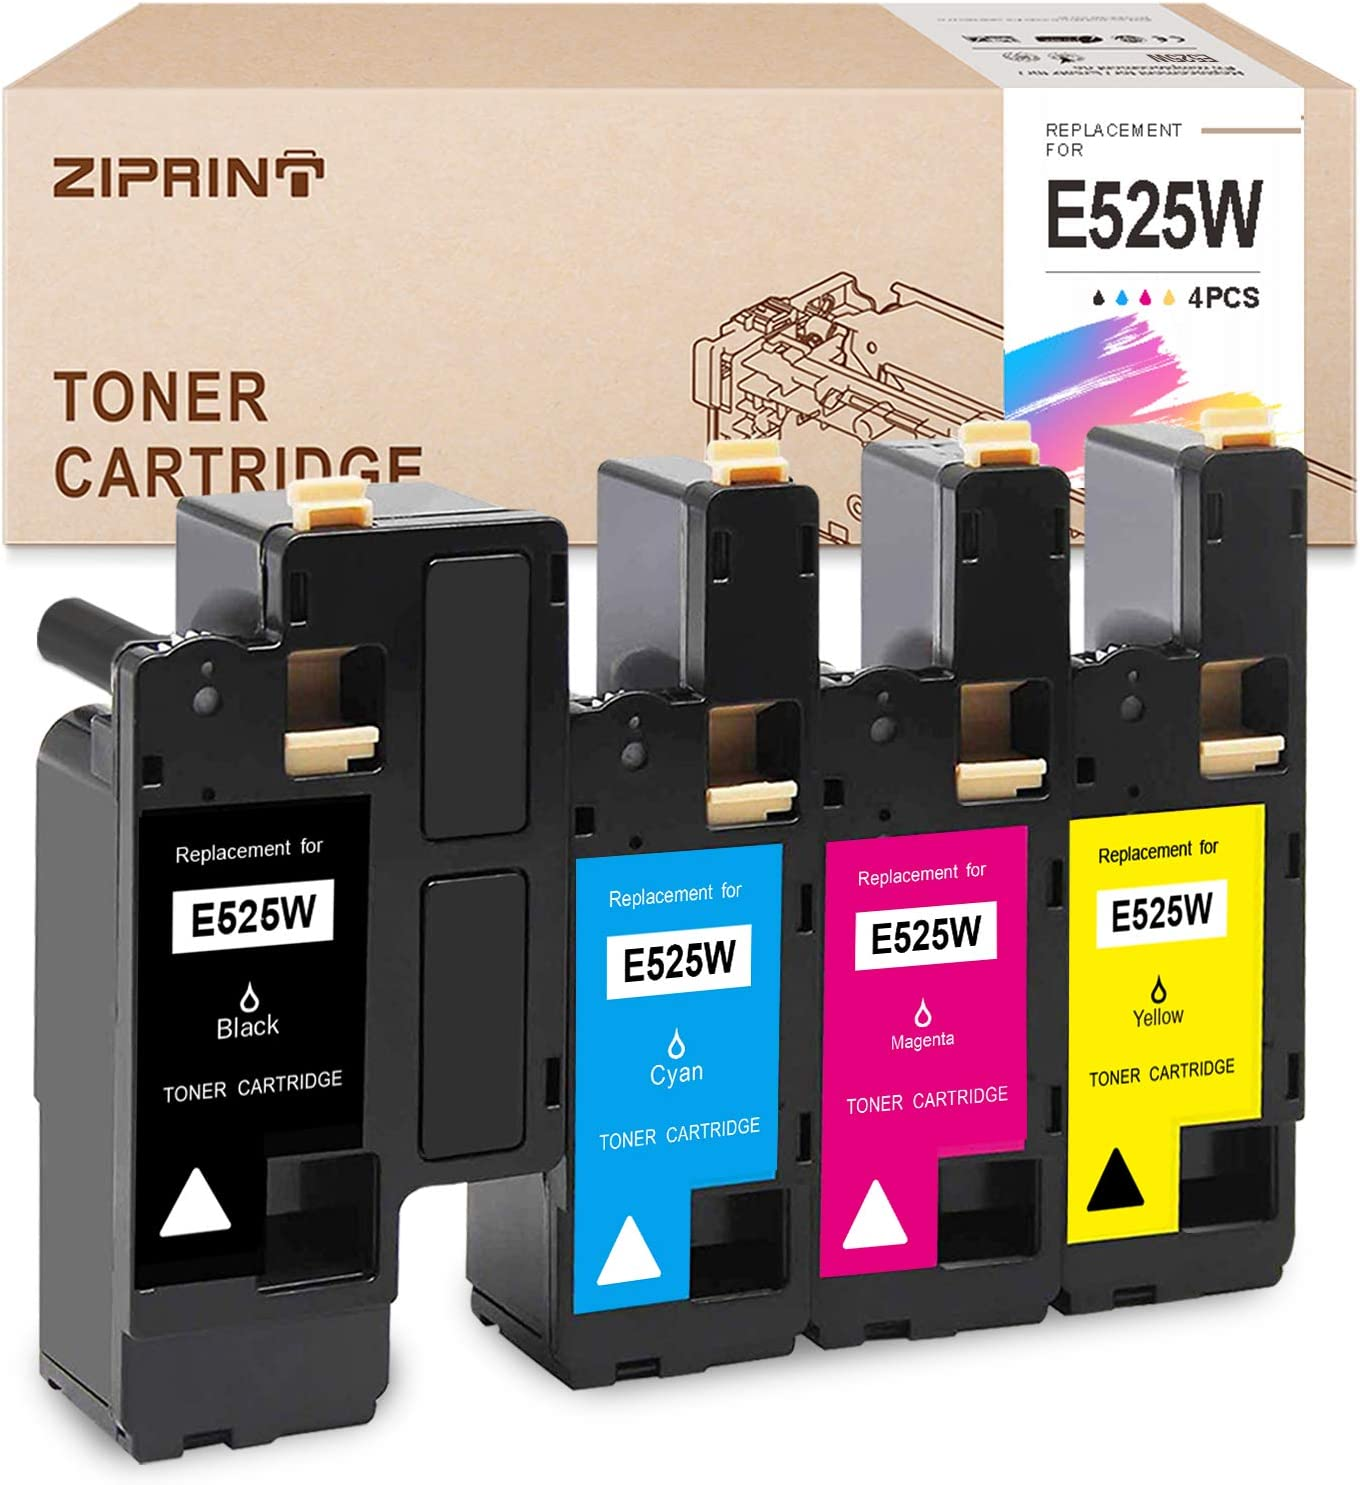 ZIPRINT Compatible Toner Cartridge Replacement for Dell E525W 525 E525 525w to use with Dell E525W Color Laser Printer (Black 593-BBJX, Cyan 593-BBJU, Magenta 593-BBJV, Yellow 593-BBJW, 4-Pack)